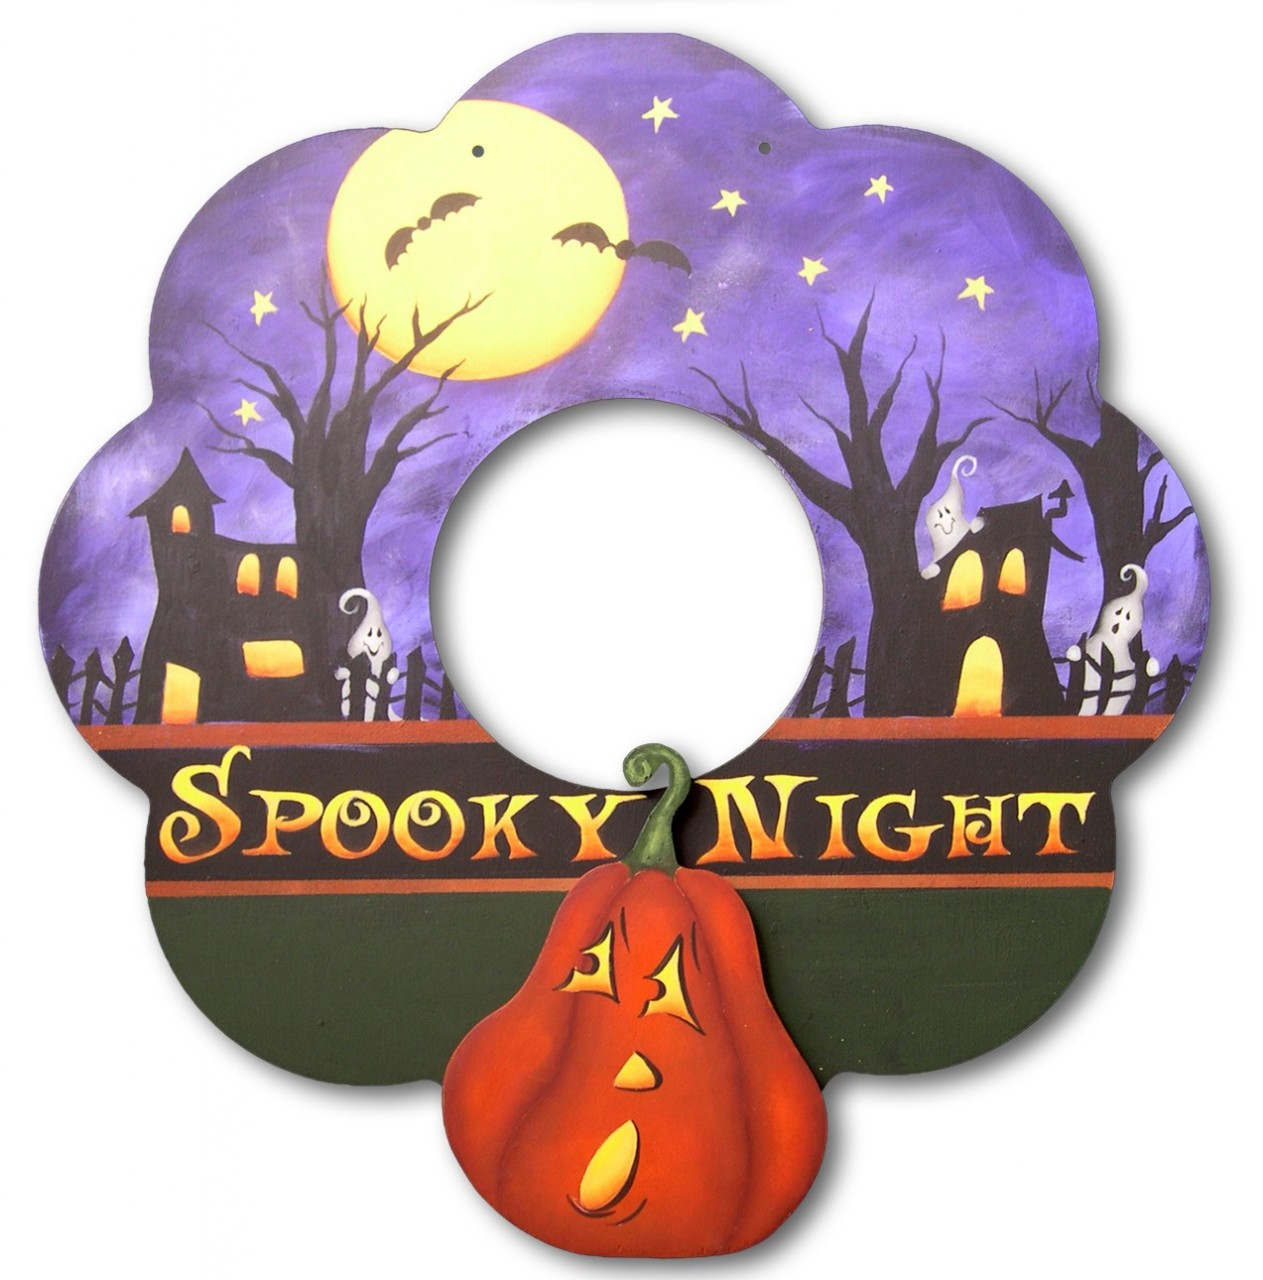 Spooky Wreath - E-Packet - Patricia Rawlinson